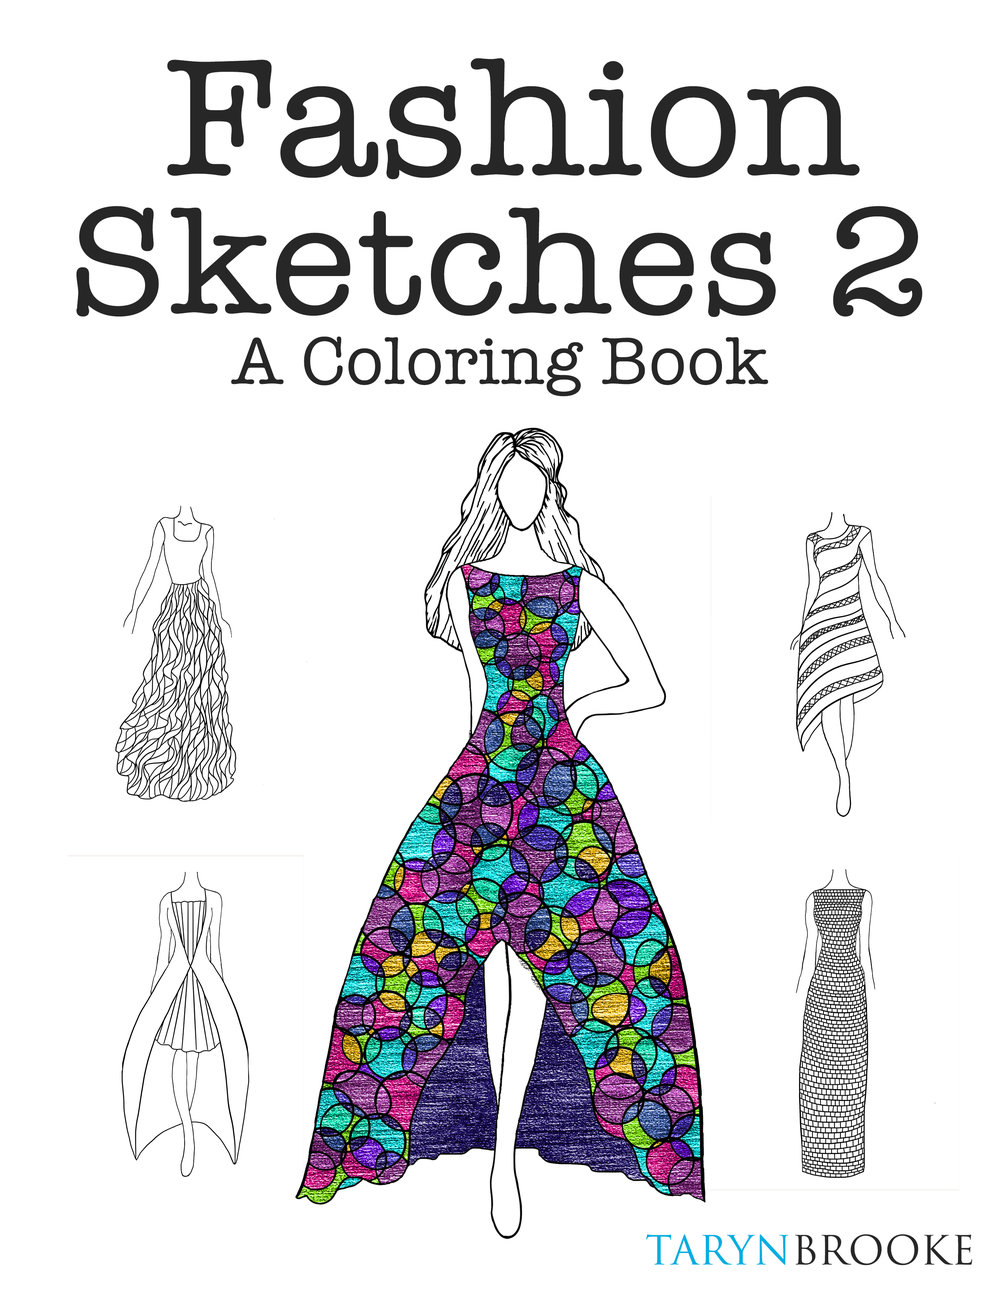 Fashion Sketches 2 Cover.jpg